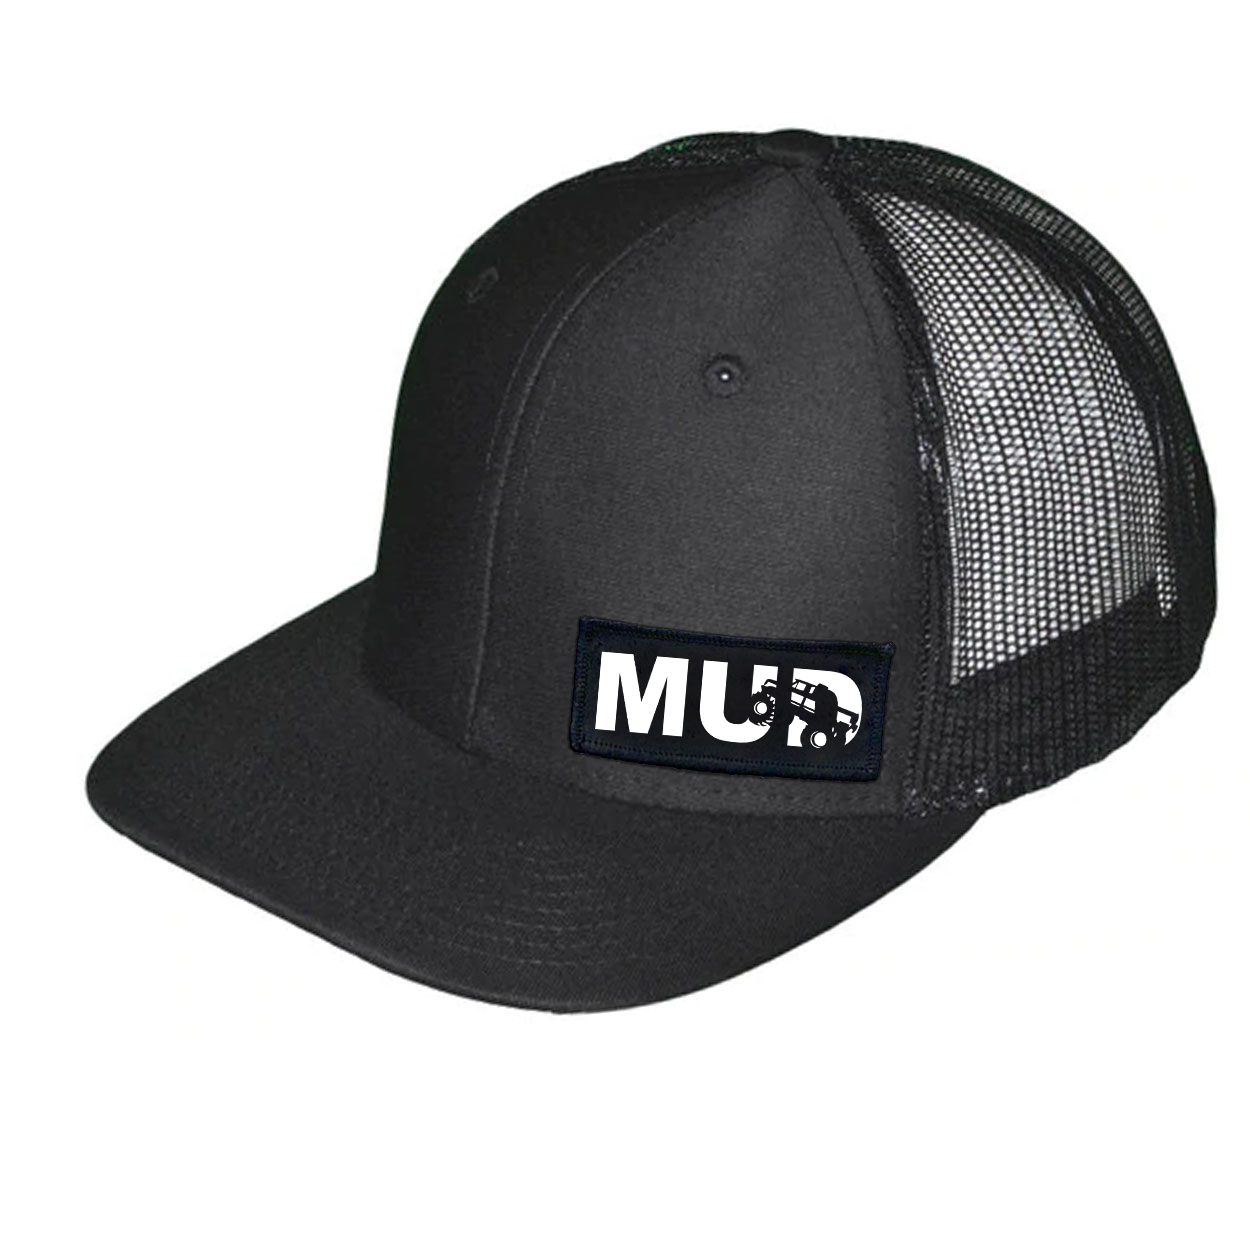 Mud Truck Logo Night Out Woven Patch Snapback Trucker Hat Black (White Logo)